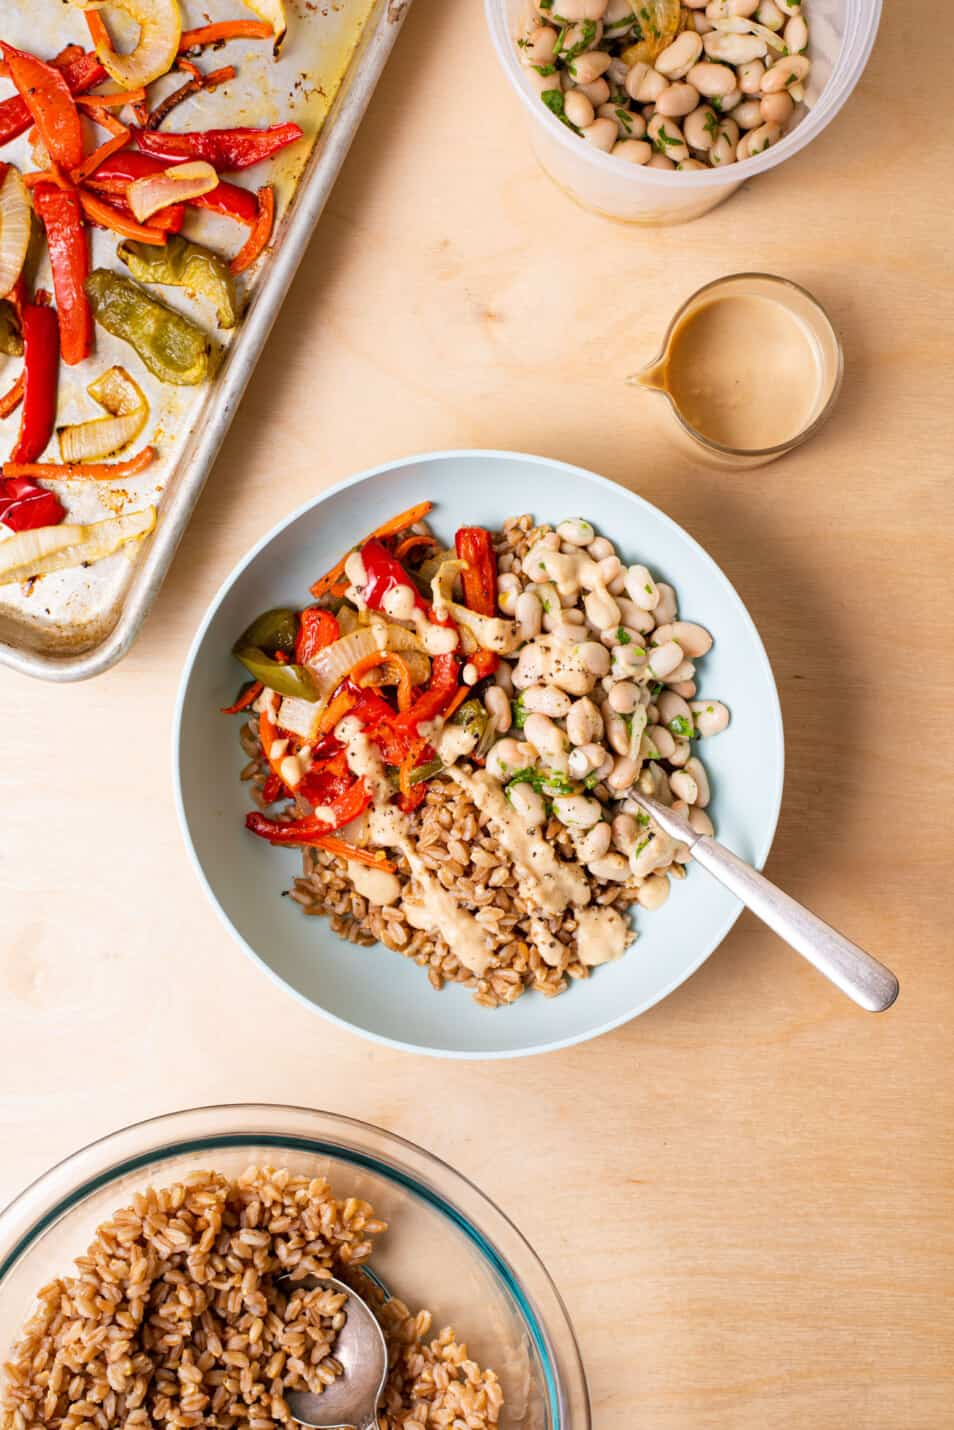 Farro bowl next to a tray of roasted vegetables, white bean salad, and tahini dressing.